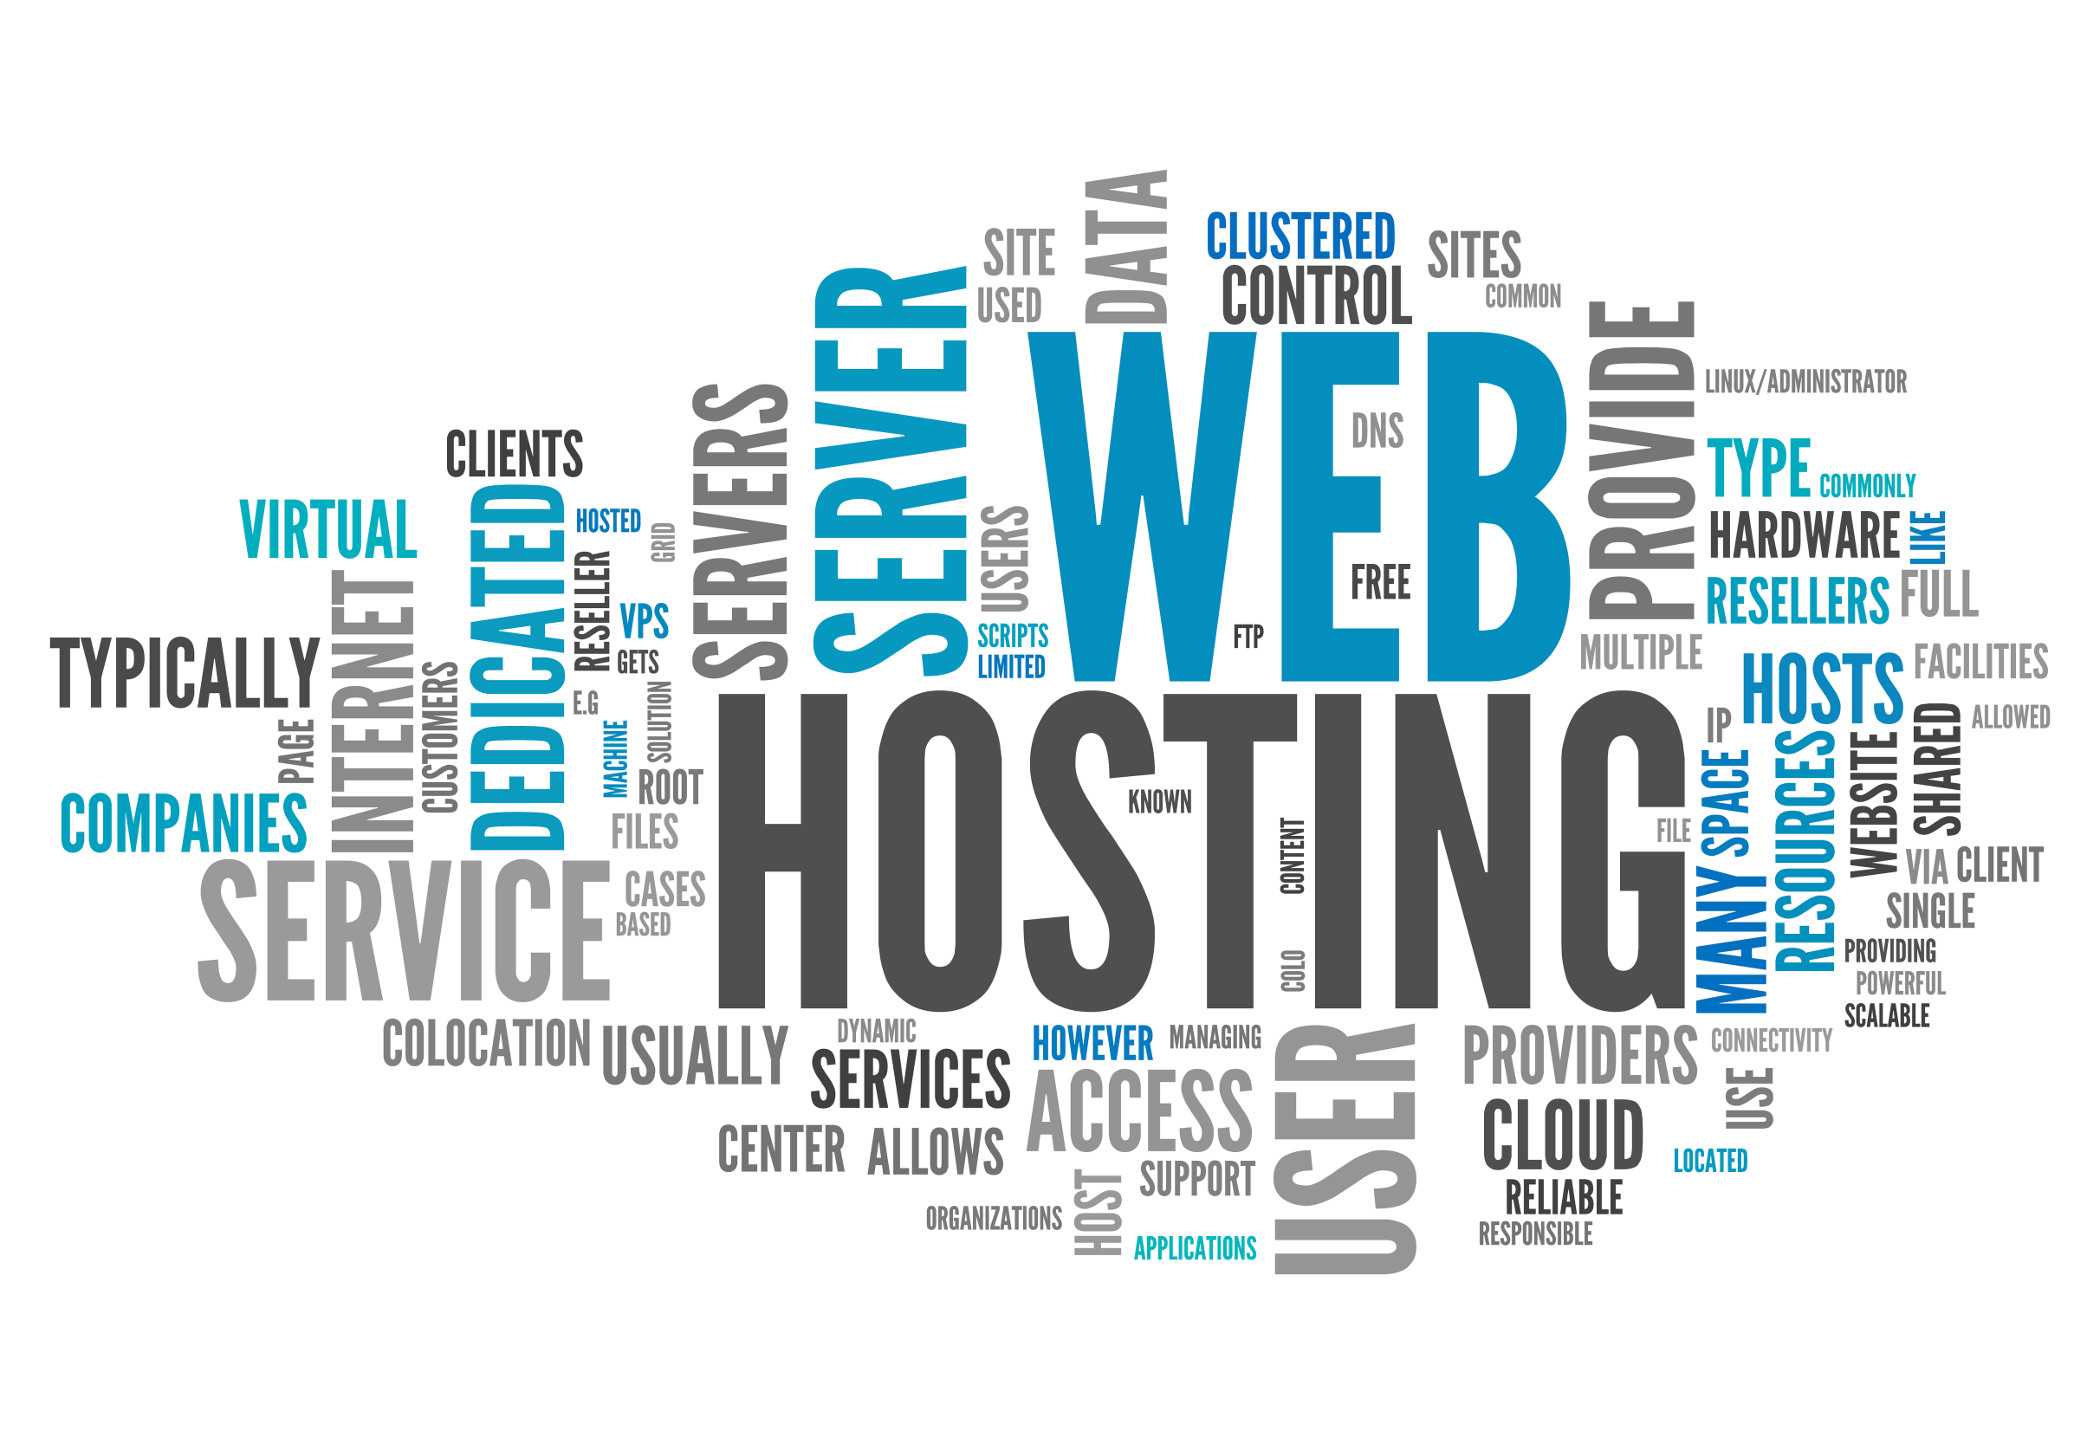 Do You Want to Avail Unlimited Web Hosting Services?